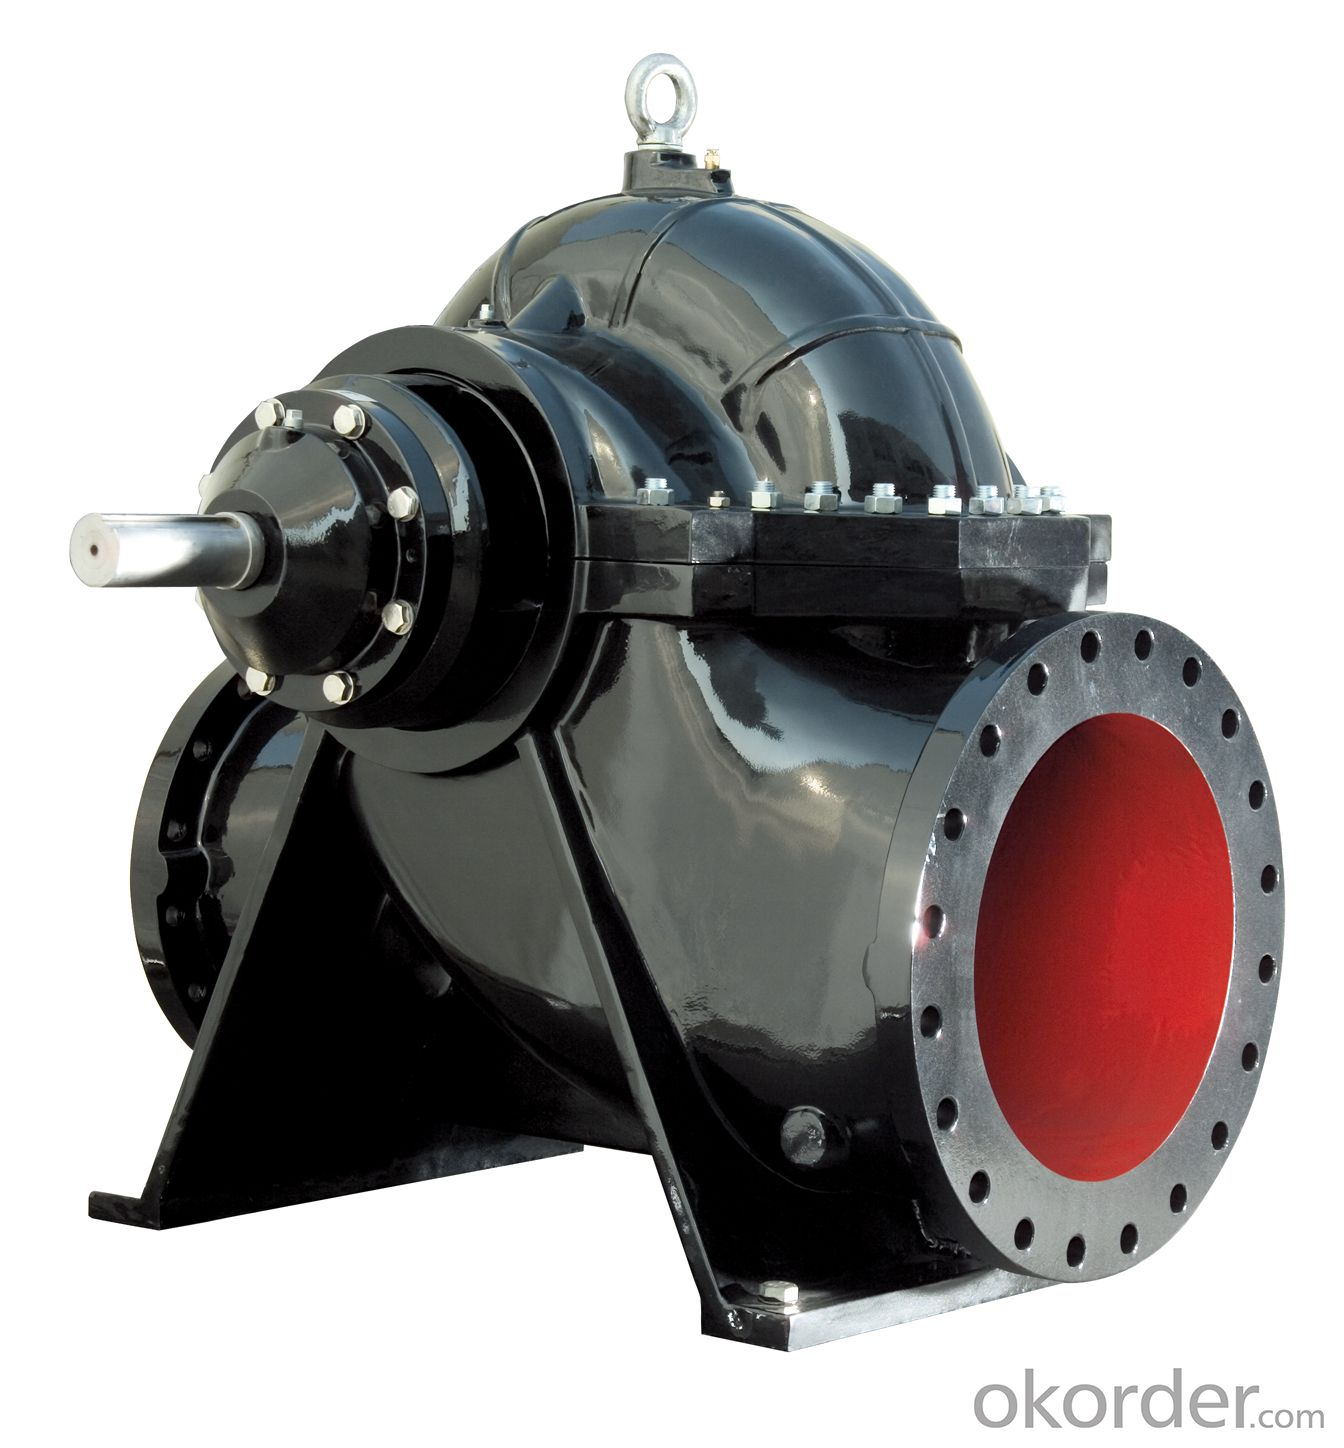 Water Pump Serie Submersible Sewage Pumps From China On Top Sale